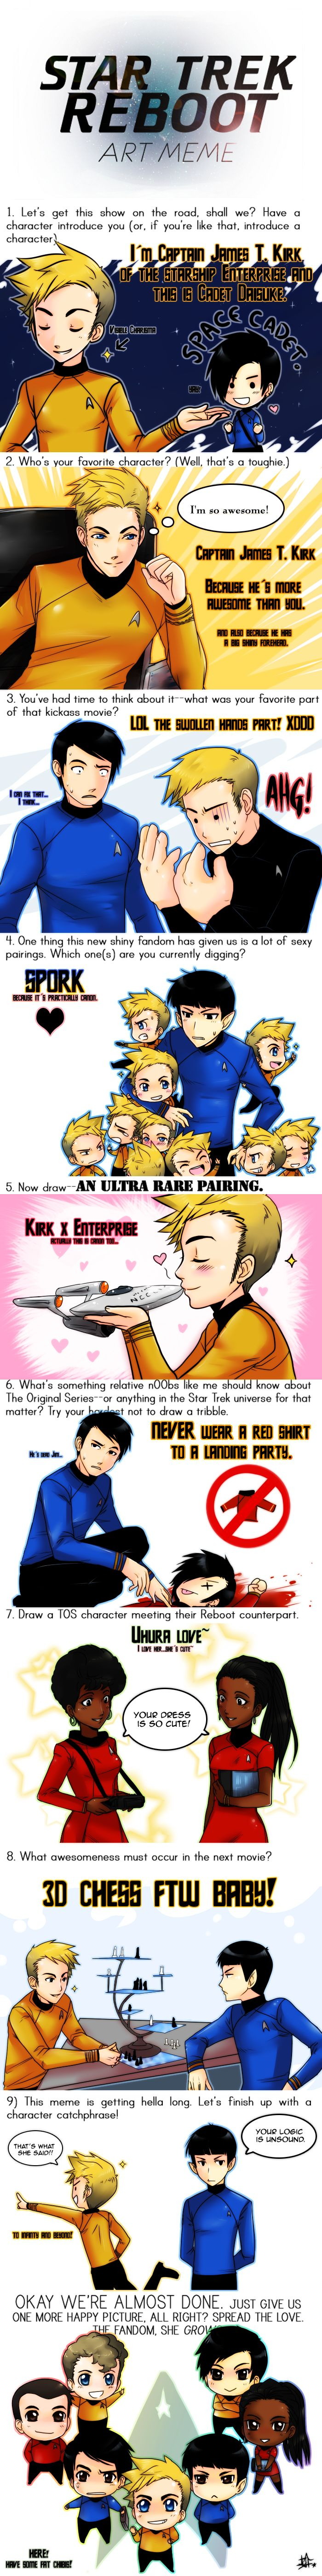 Star Trek Reboot Meme by Go-Devil-Daisuke.deviantart.com on @deviantART